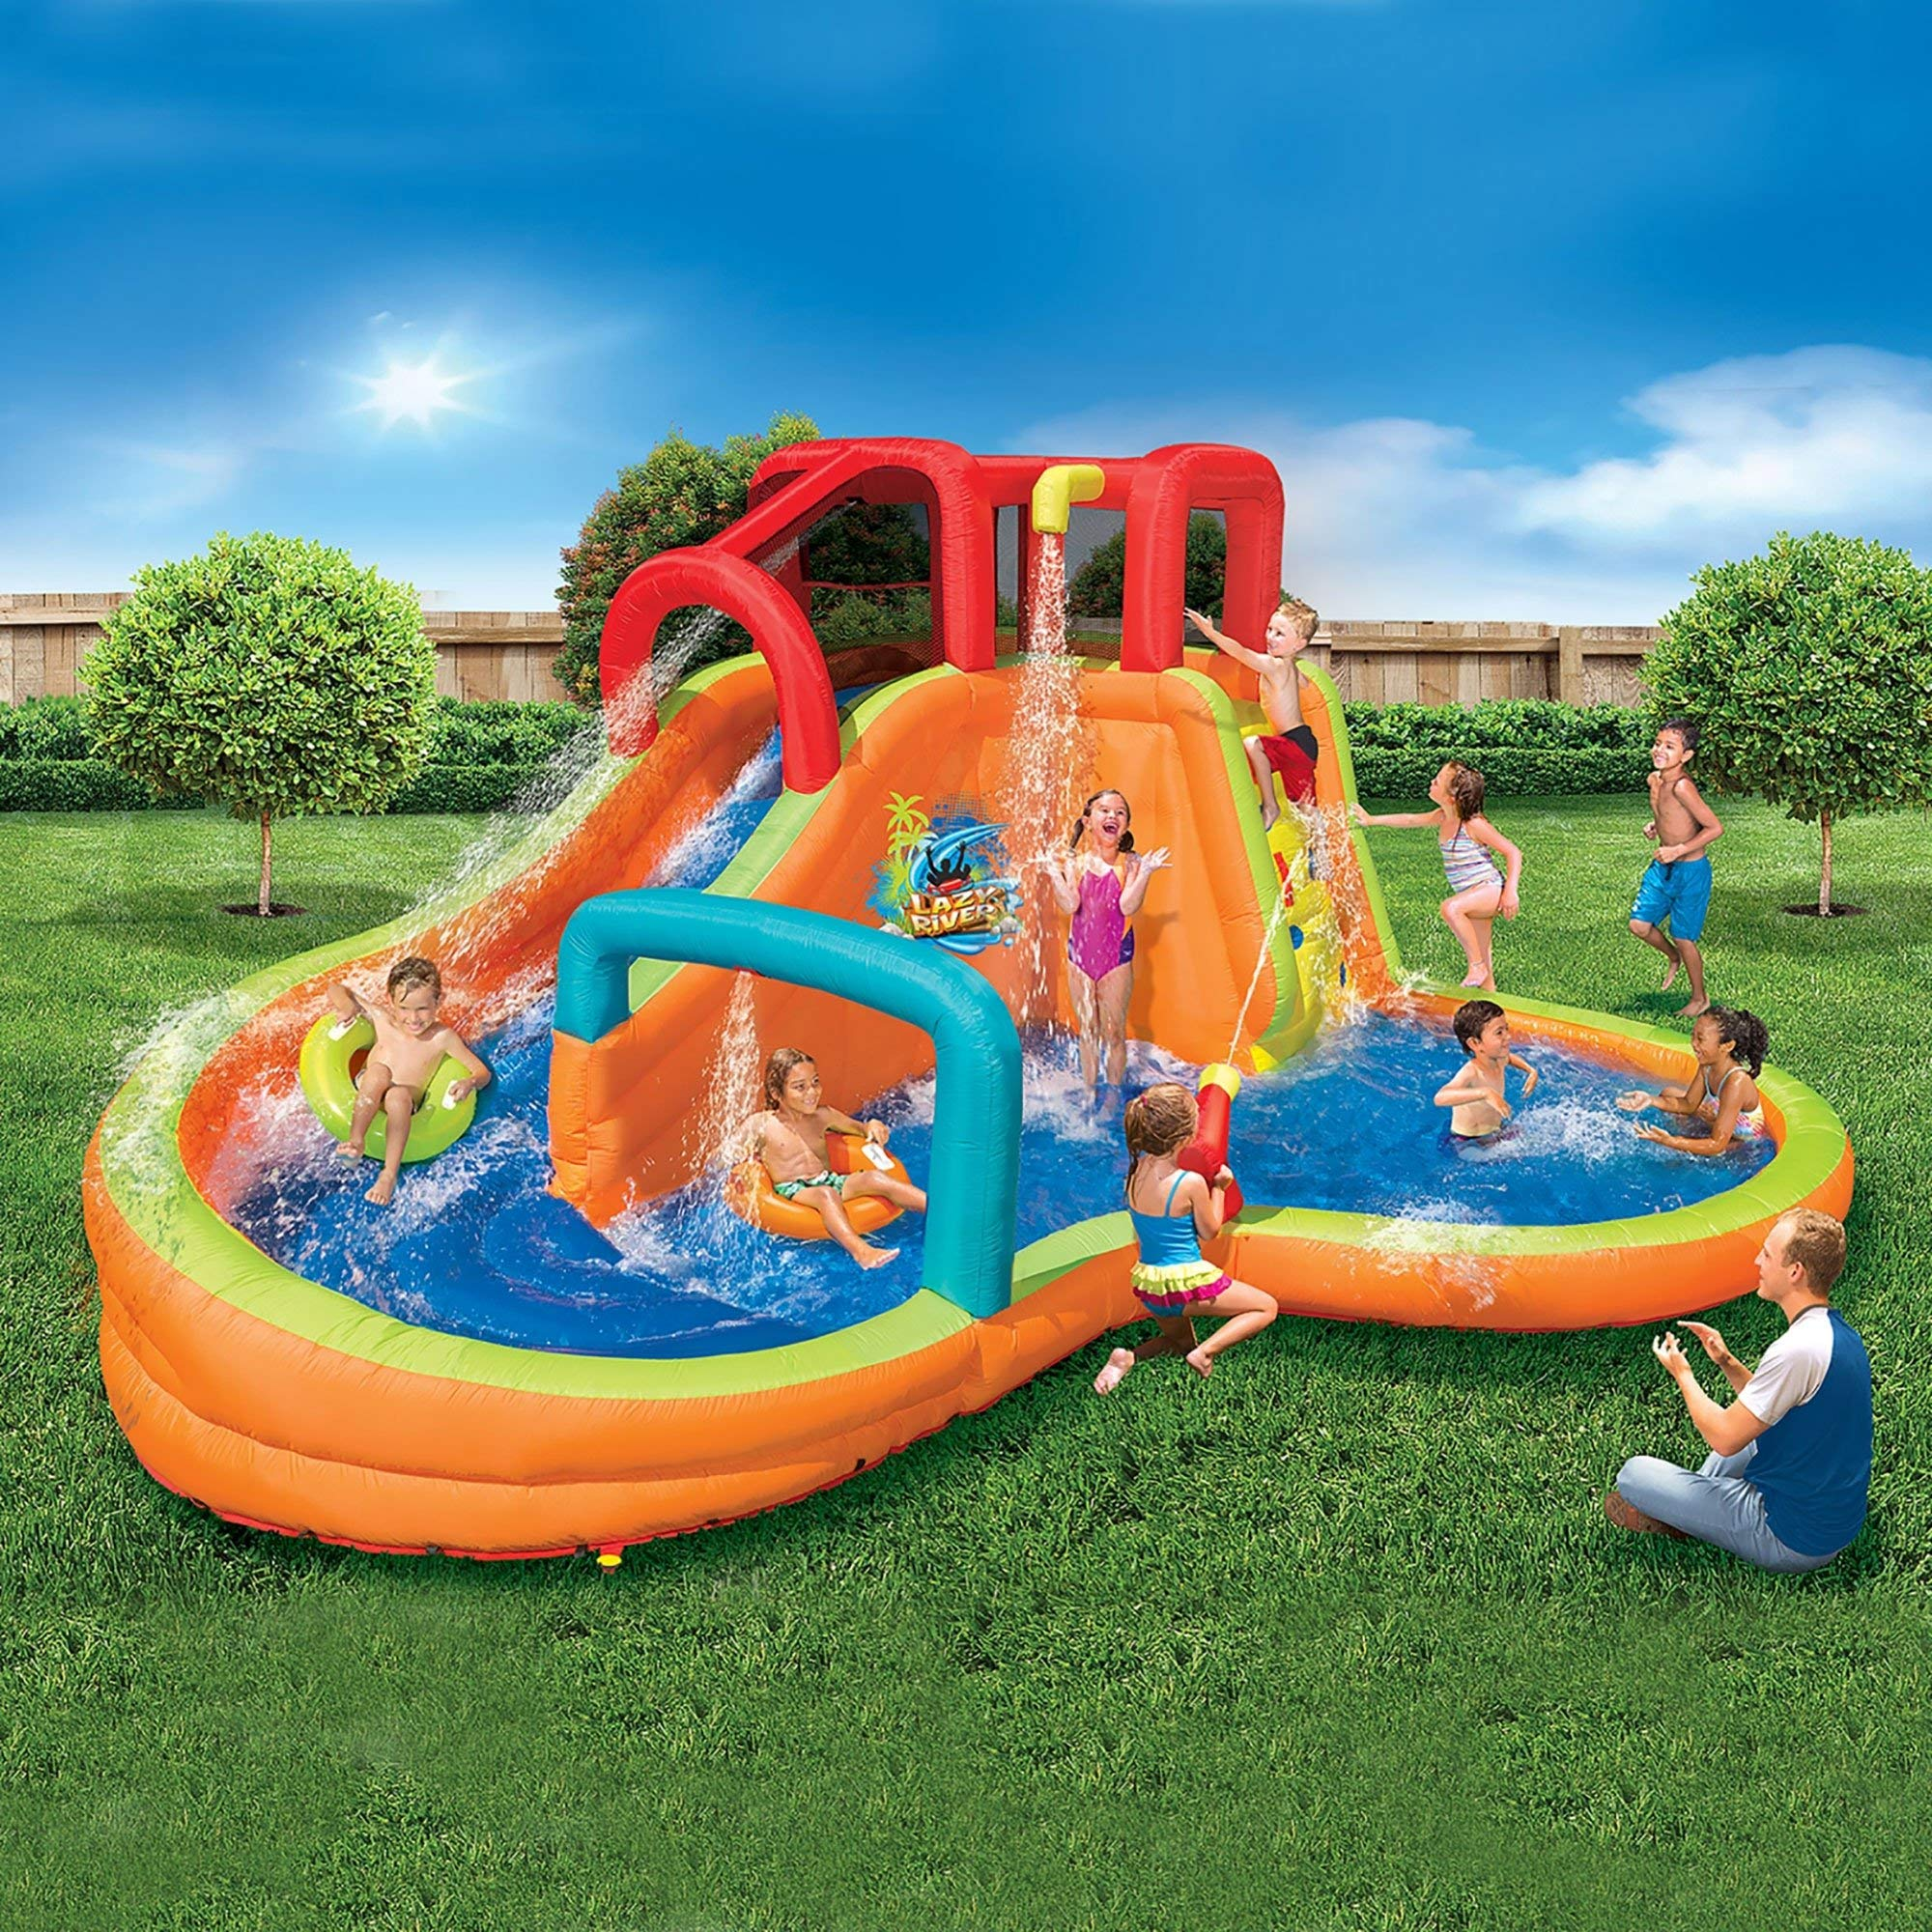 BANZAI Kids Inflatable Outdoor Lazy River Adventure Water Park Slide and Pool by BANZAI (Image #3)